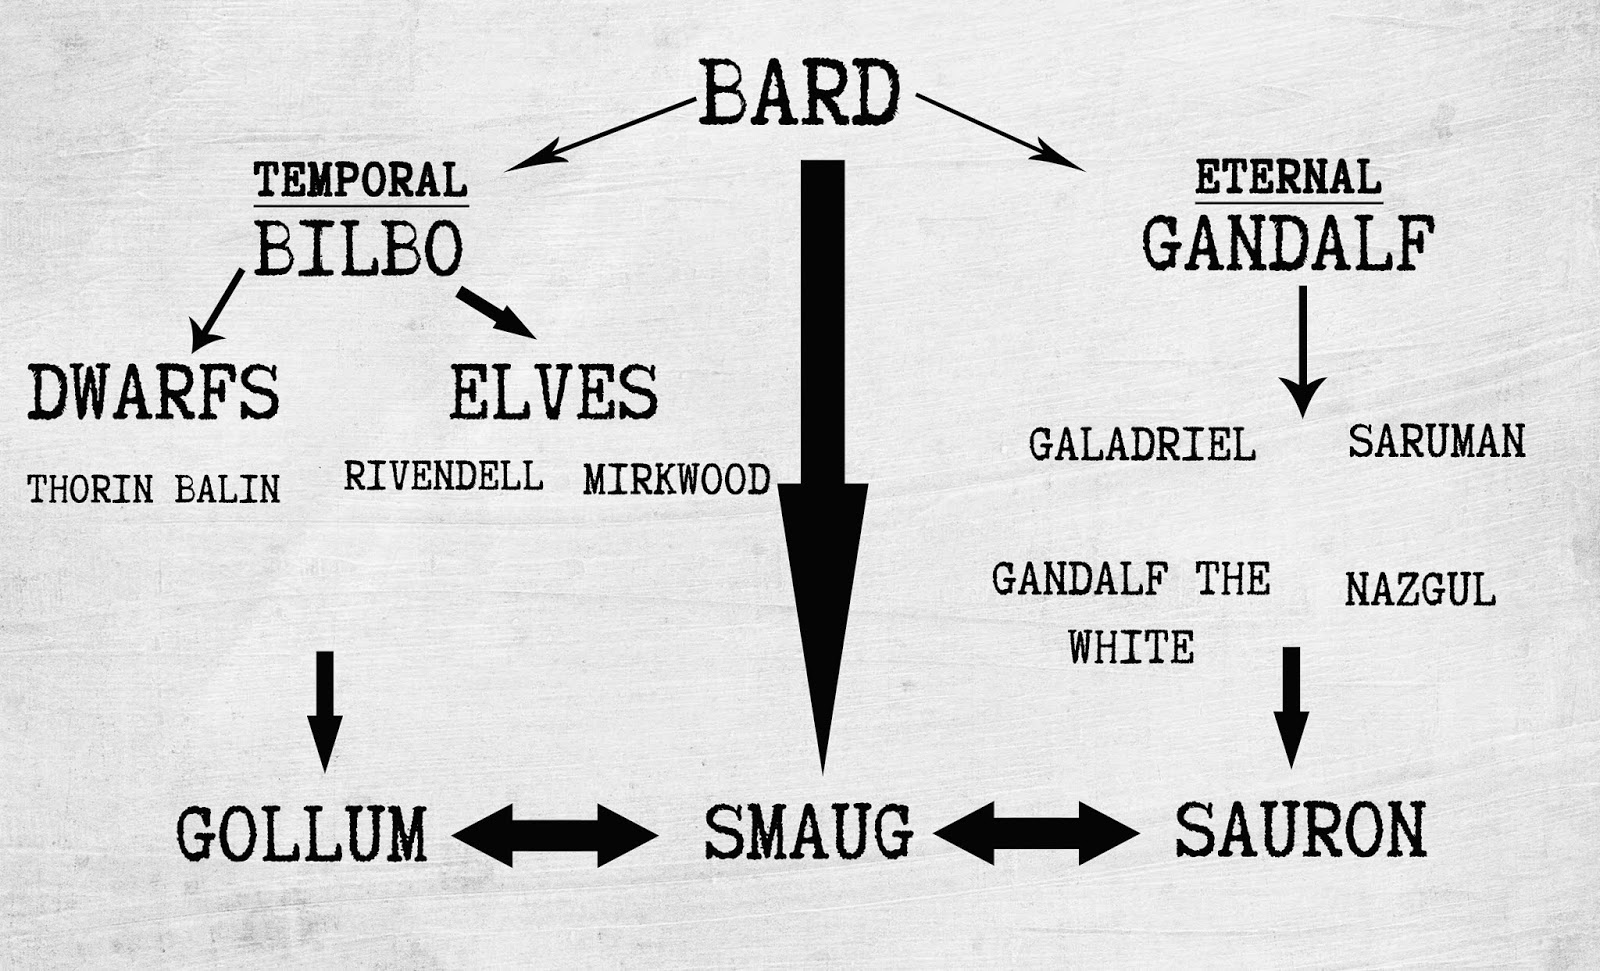 bilbo and gandalf relationship definition